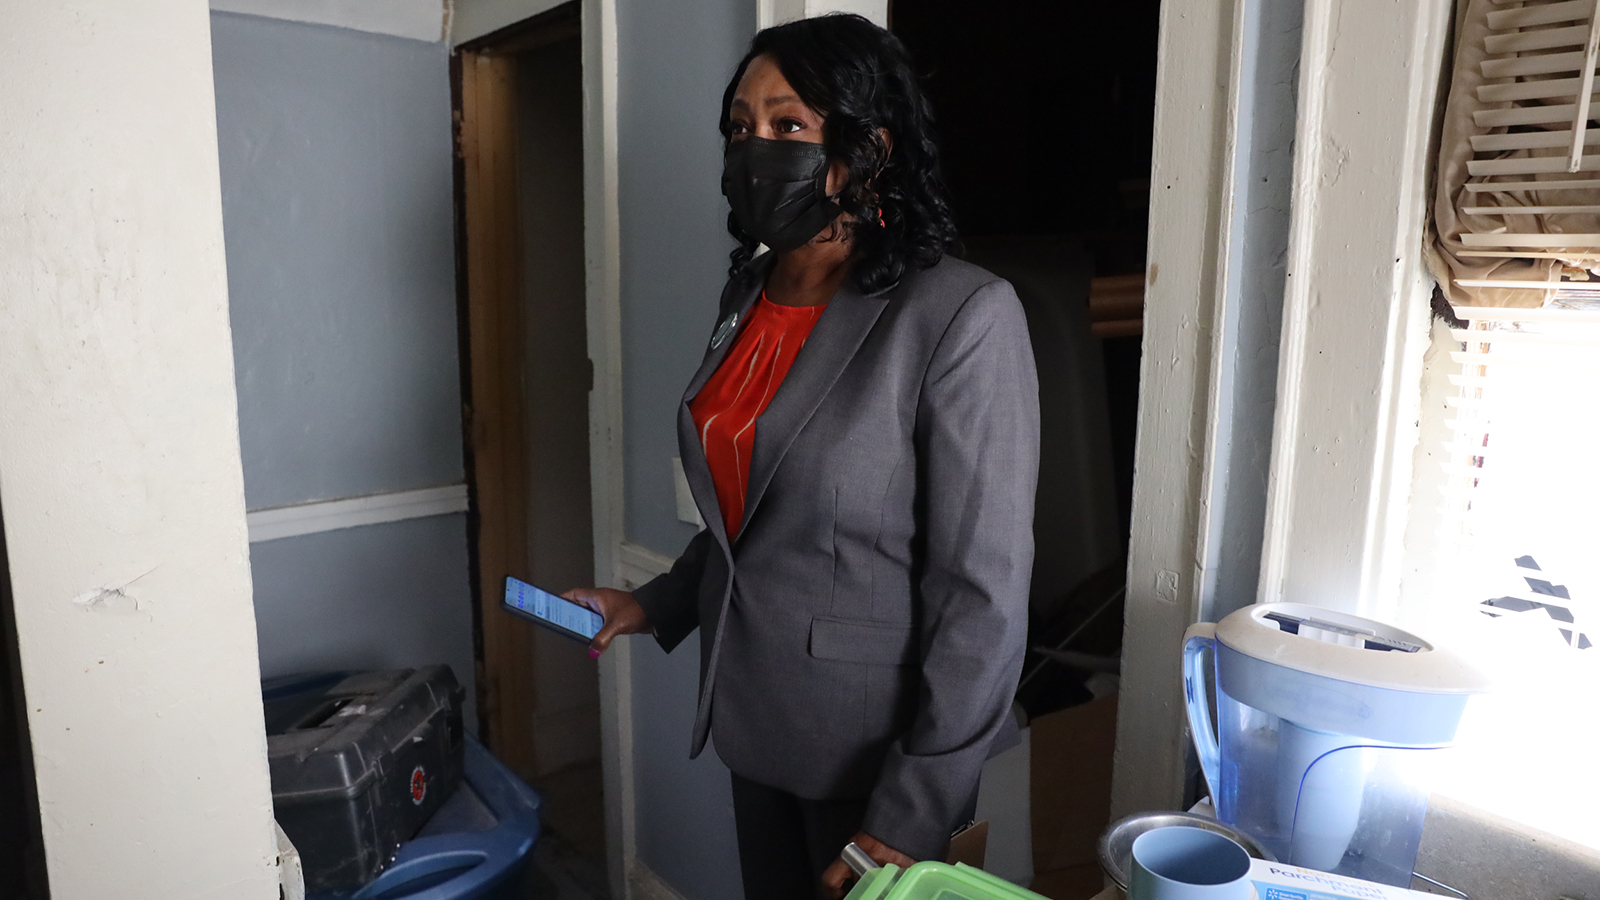 An individual wearing a face mask stands inside a house for sale.